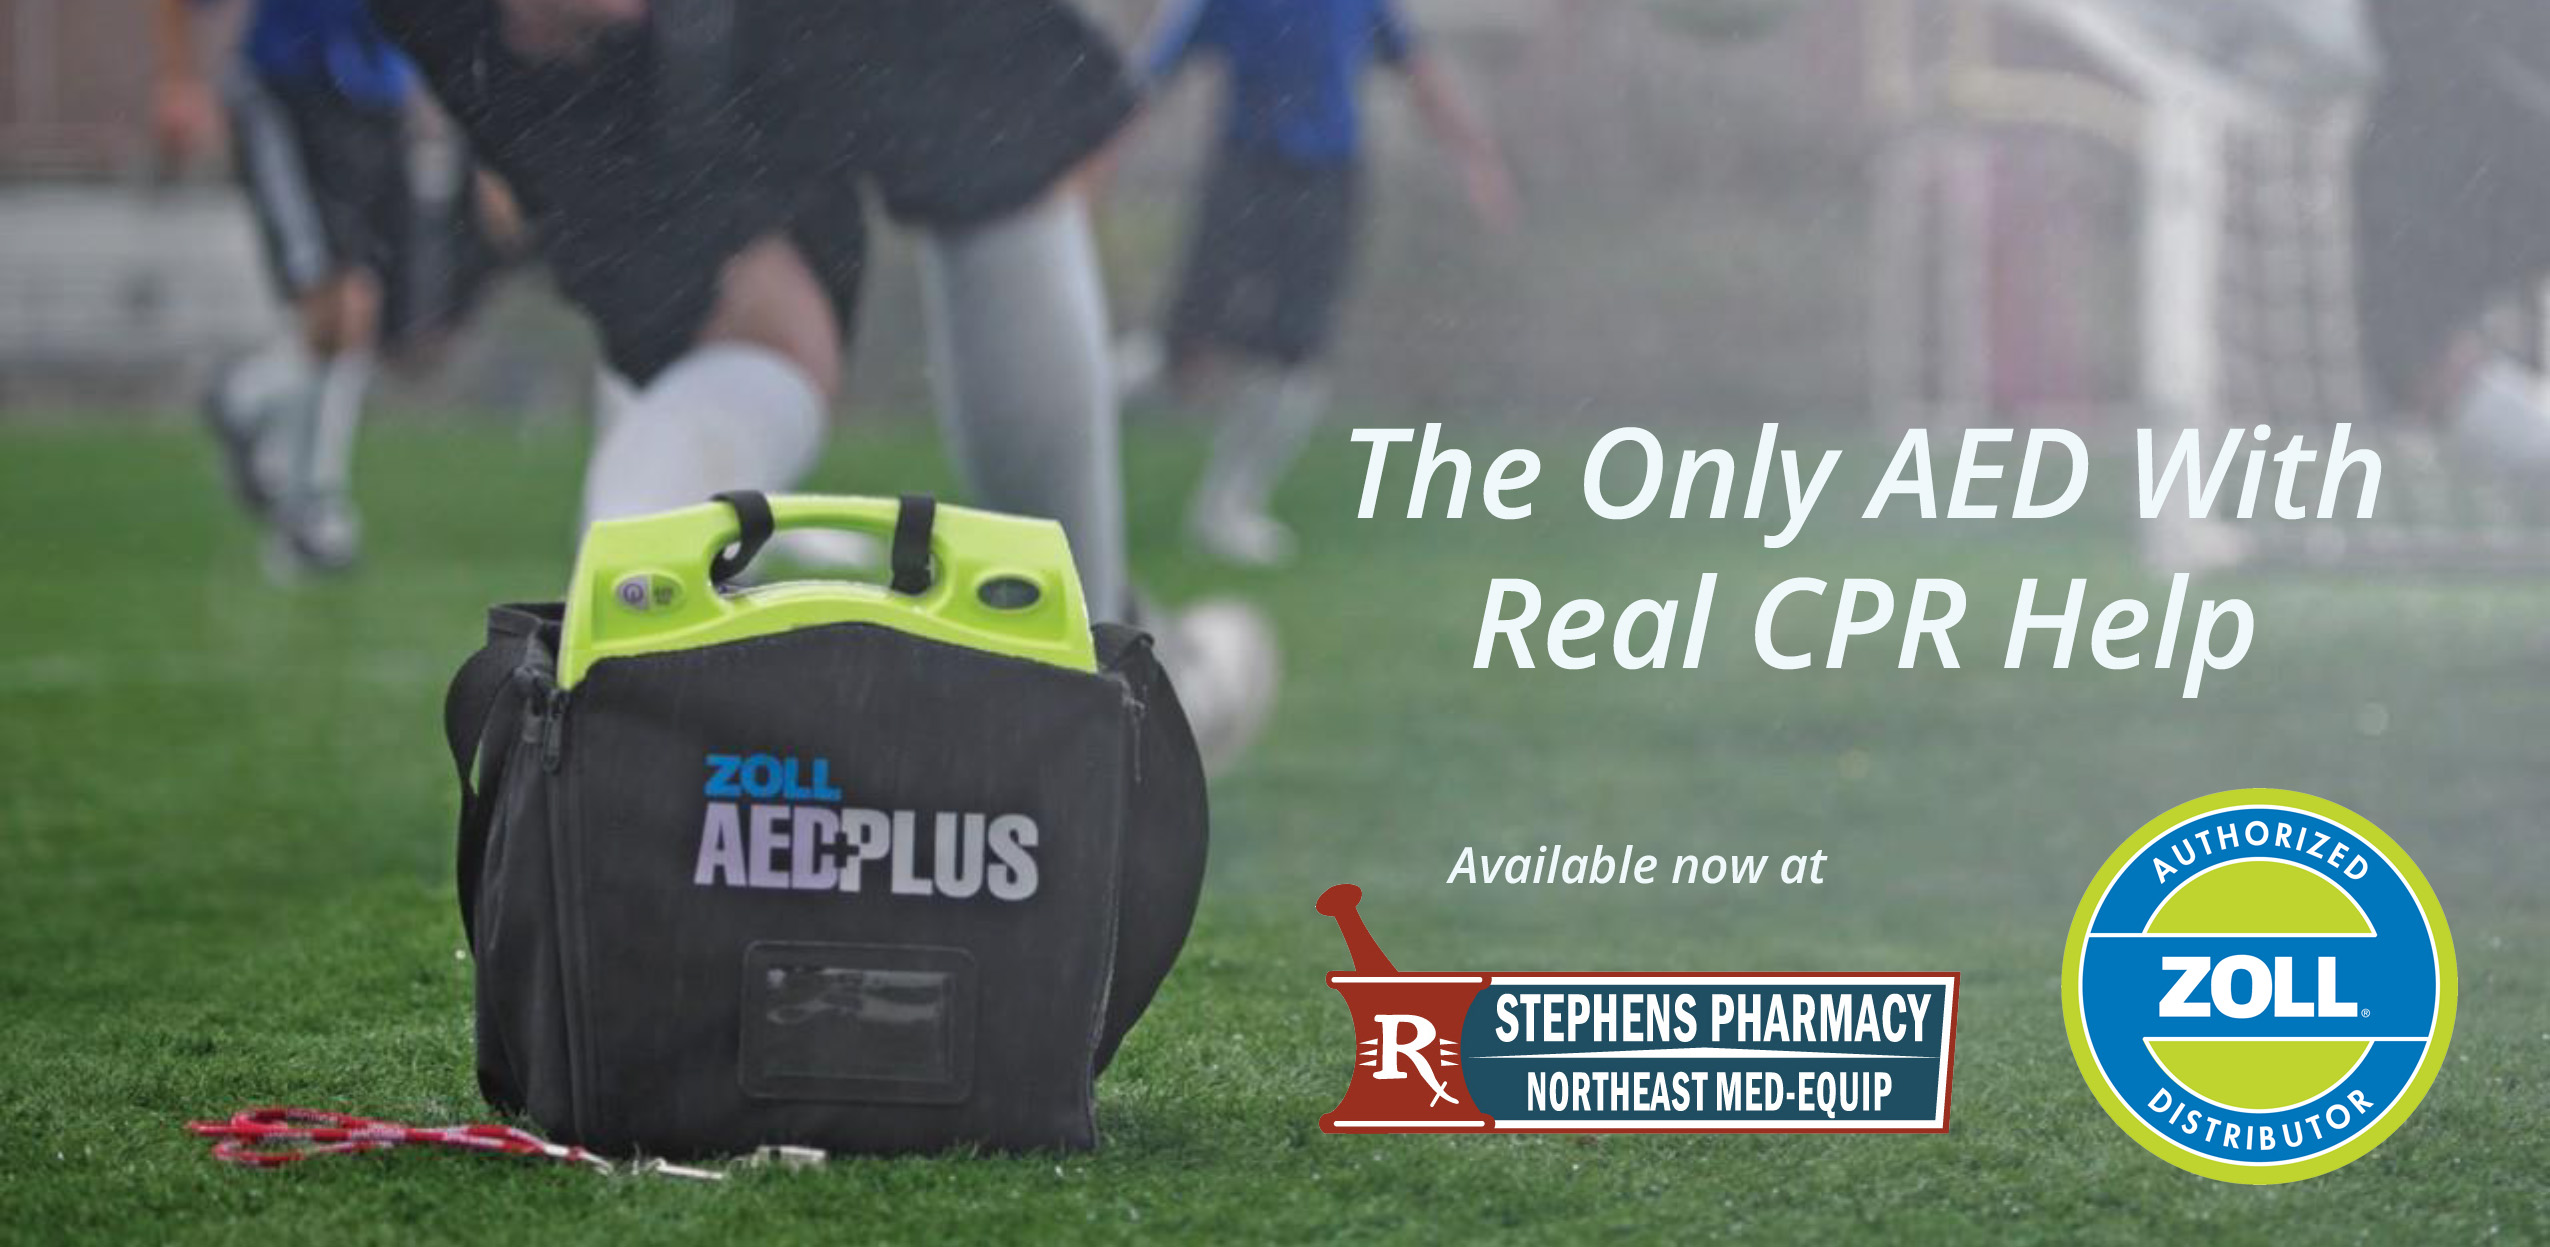 Zoll AED Plus available at Stephens Pharmacy and Northeast Med-Equip